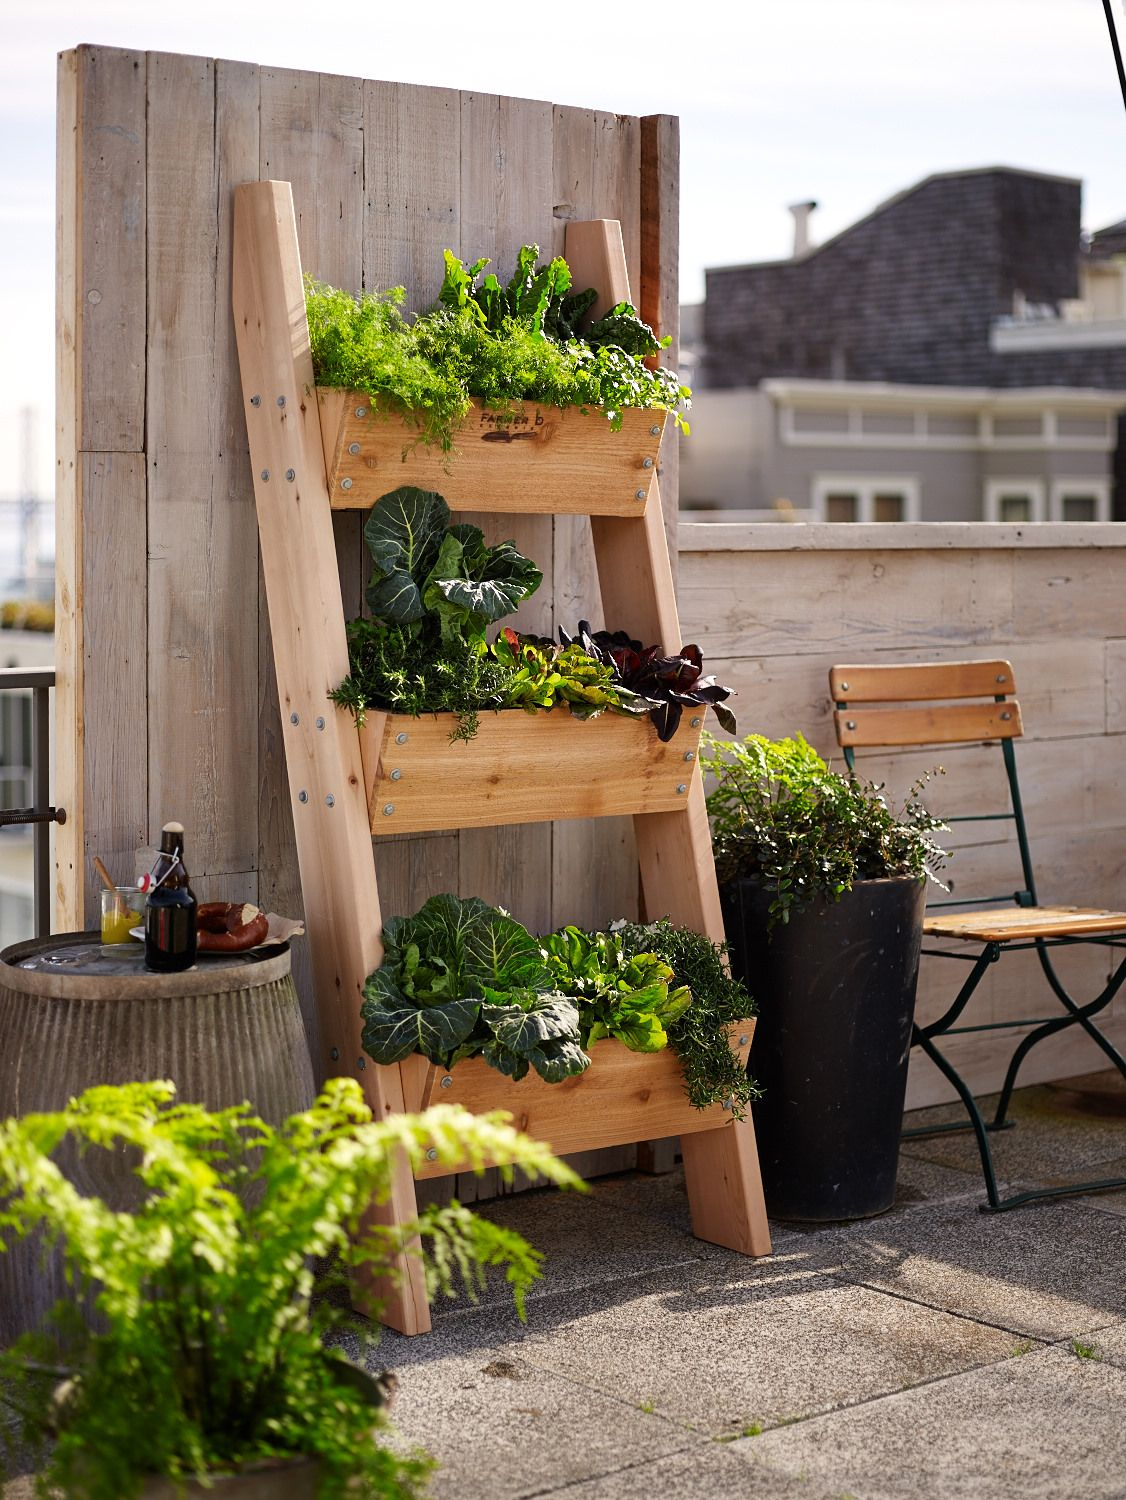 Idee Amenagement Jardin Potager Fines Herbes Potagers Kitchen Gardens огород